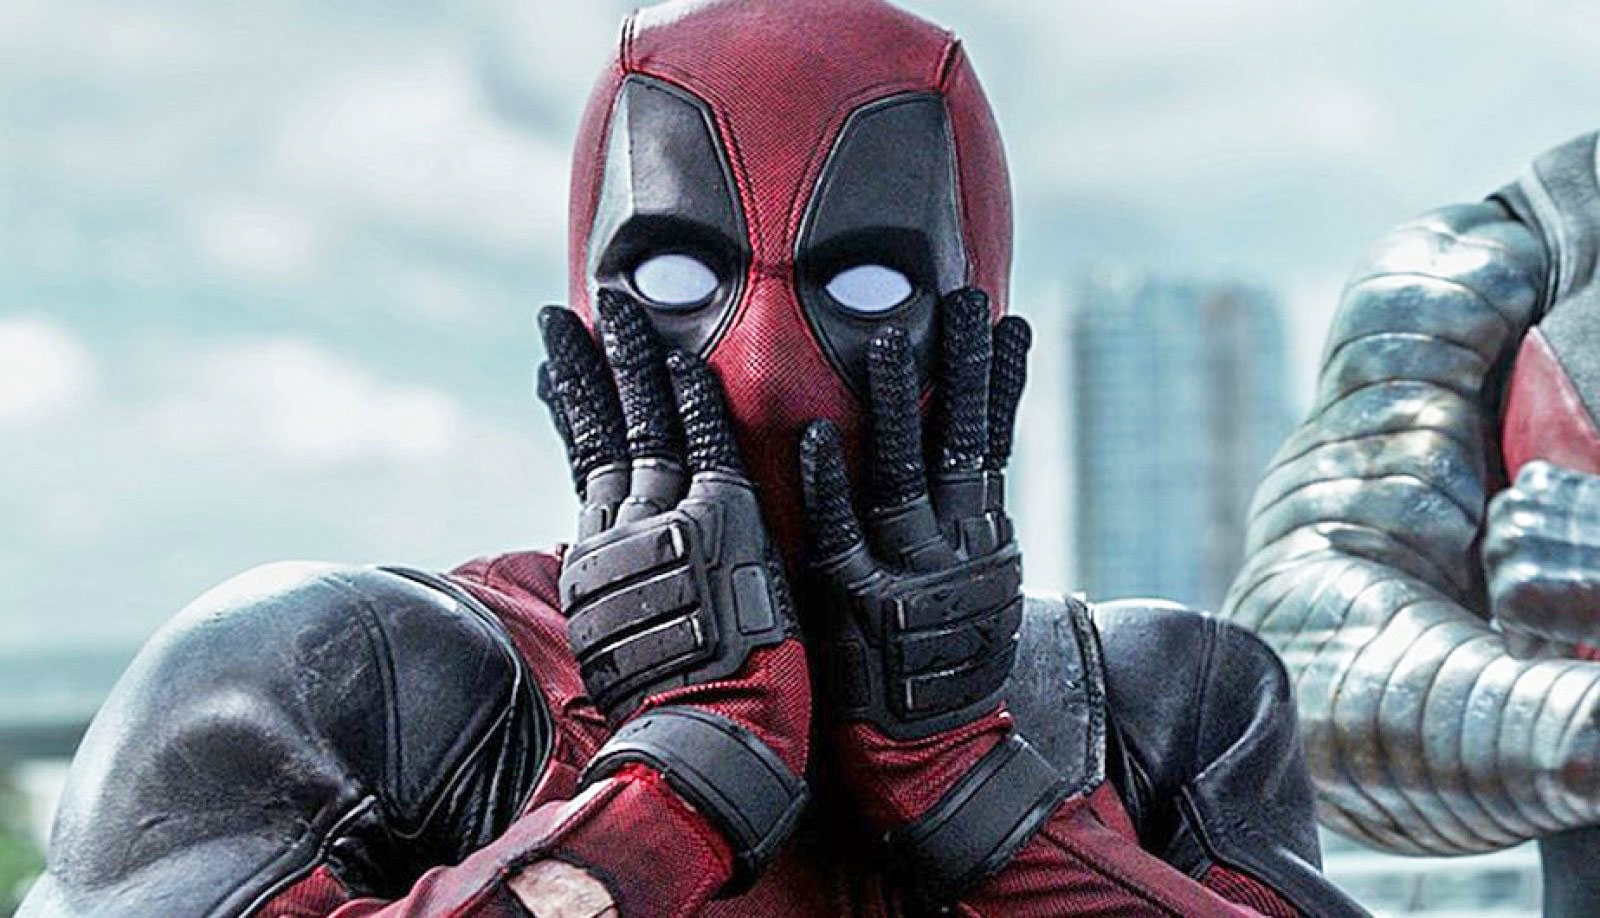 If you want to see how content marketing can build a brand, how to speak to an audience, and how to go viral, look no further than Deadpool.